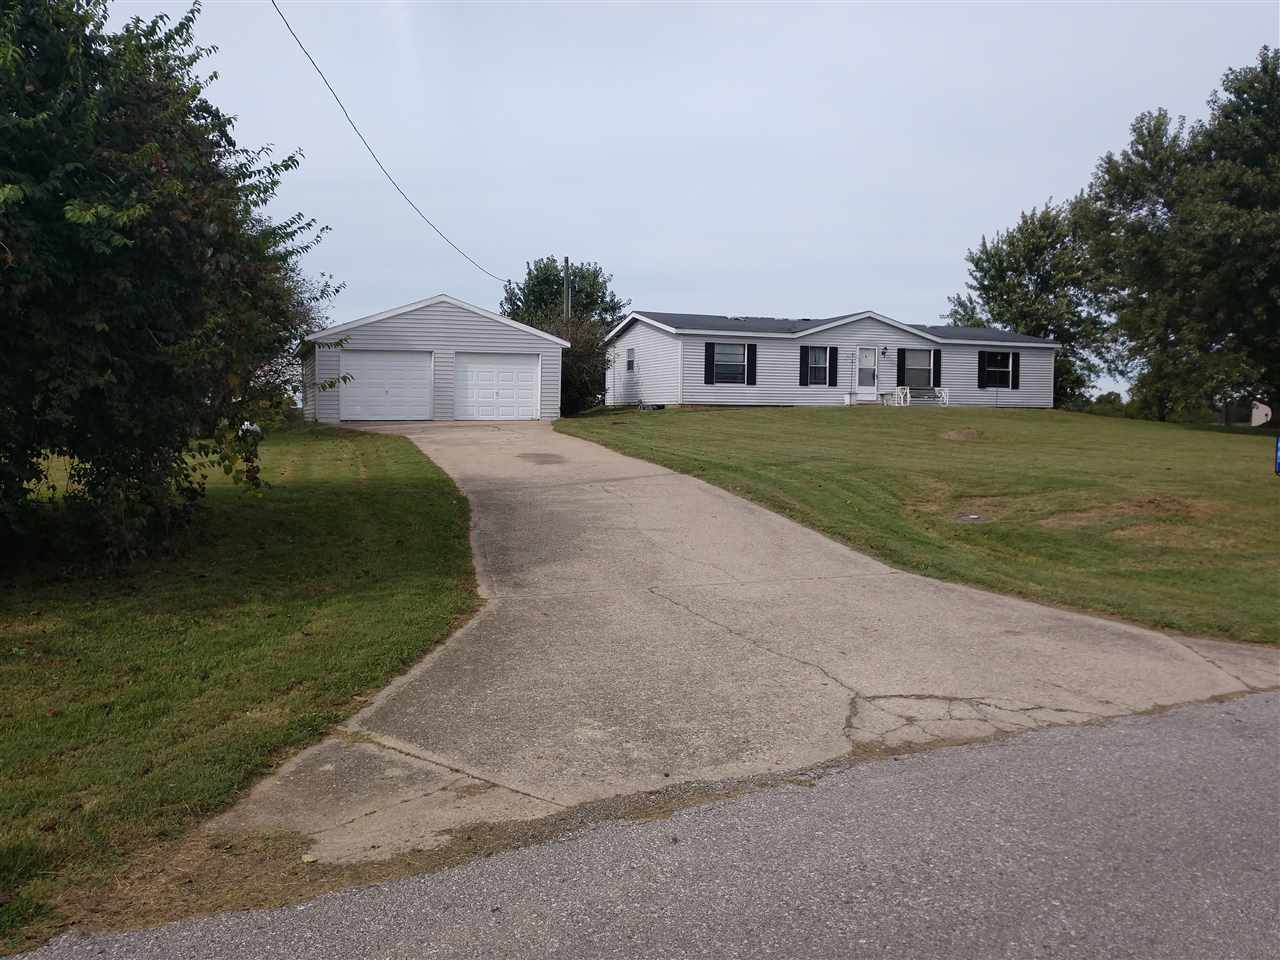 Photo 1 for 610 Rogers Crittenden, KY 41030